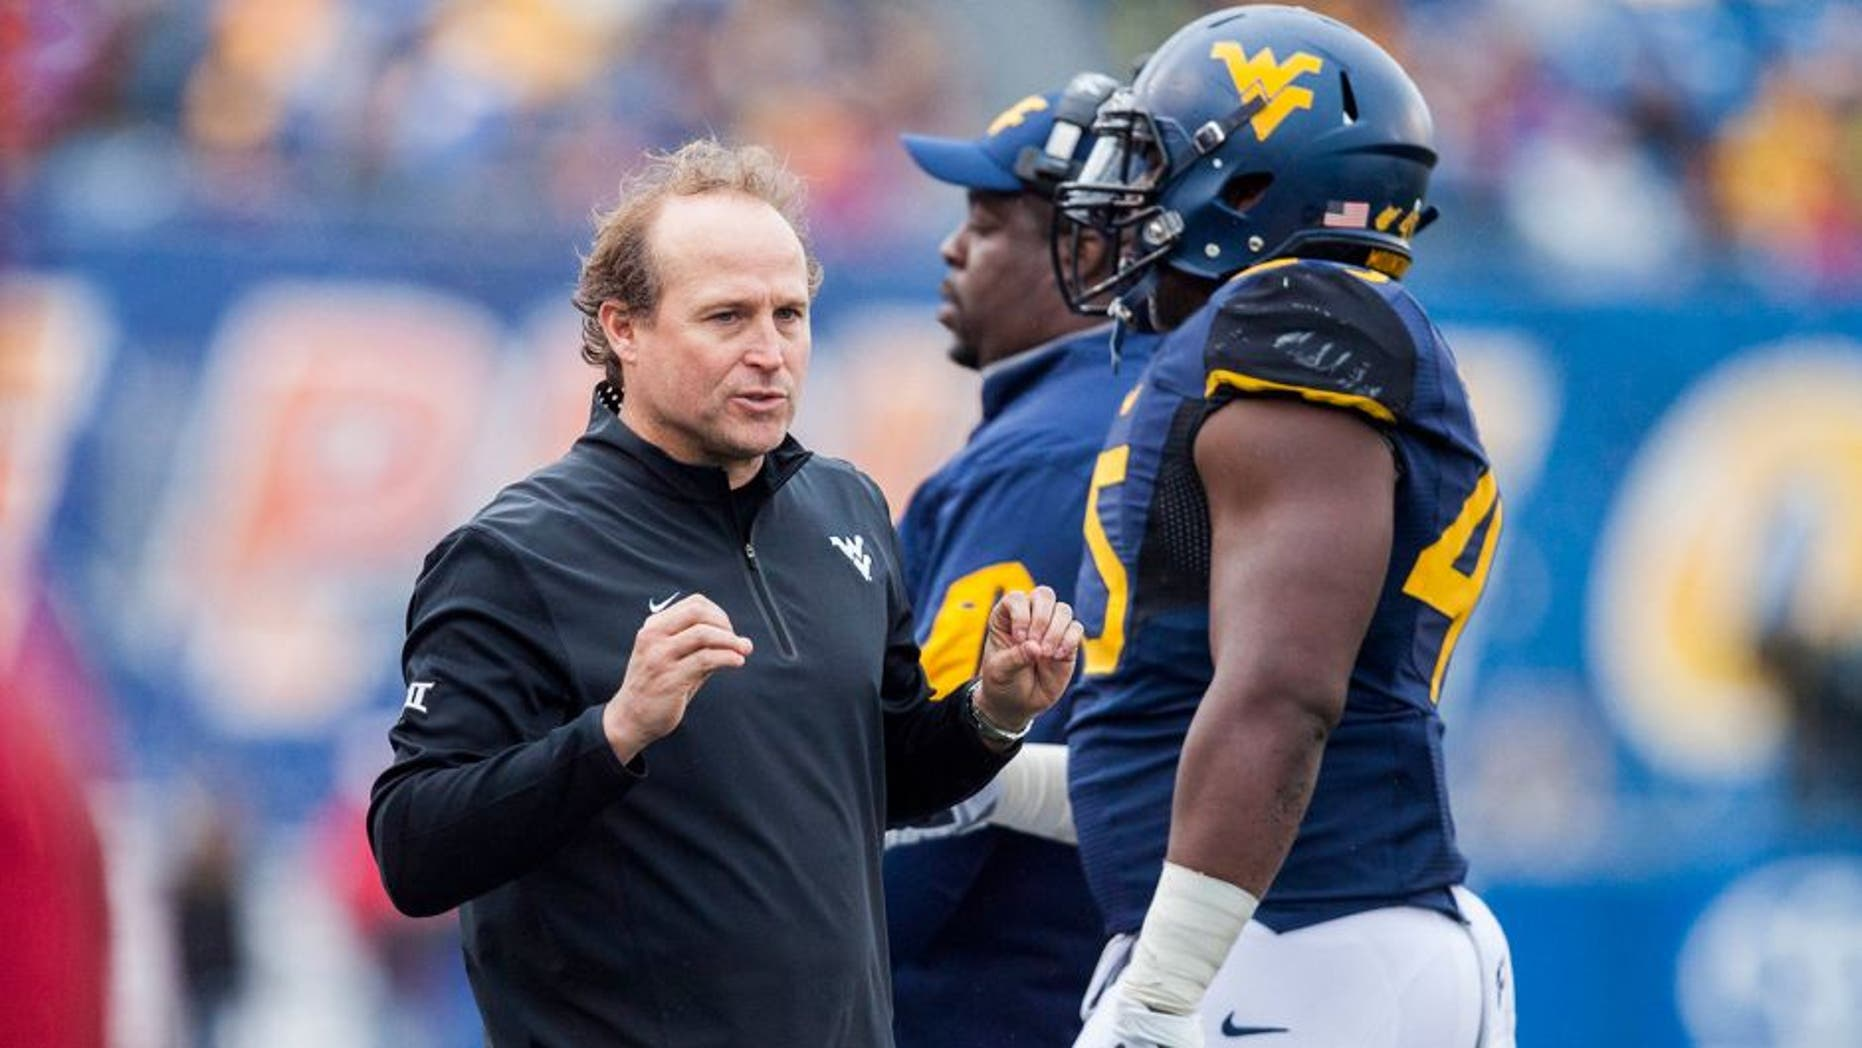 Nov 28, 2015; Morgantown, WV, USA; West Virginia Mountaineers head coach Dana Holgorsen talks with players on the sideline during the second quarter against the Iowa State Cyclones at Milan Puskar Stadium. Mandatory Credit: Ben Queen-USA TODAY Sports